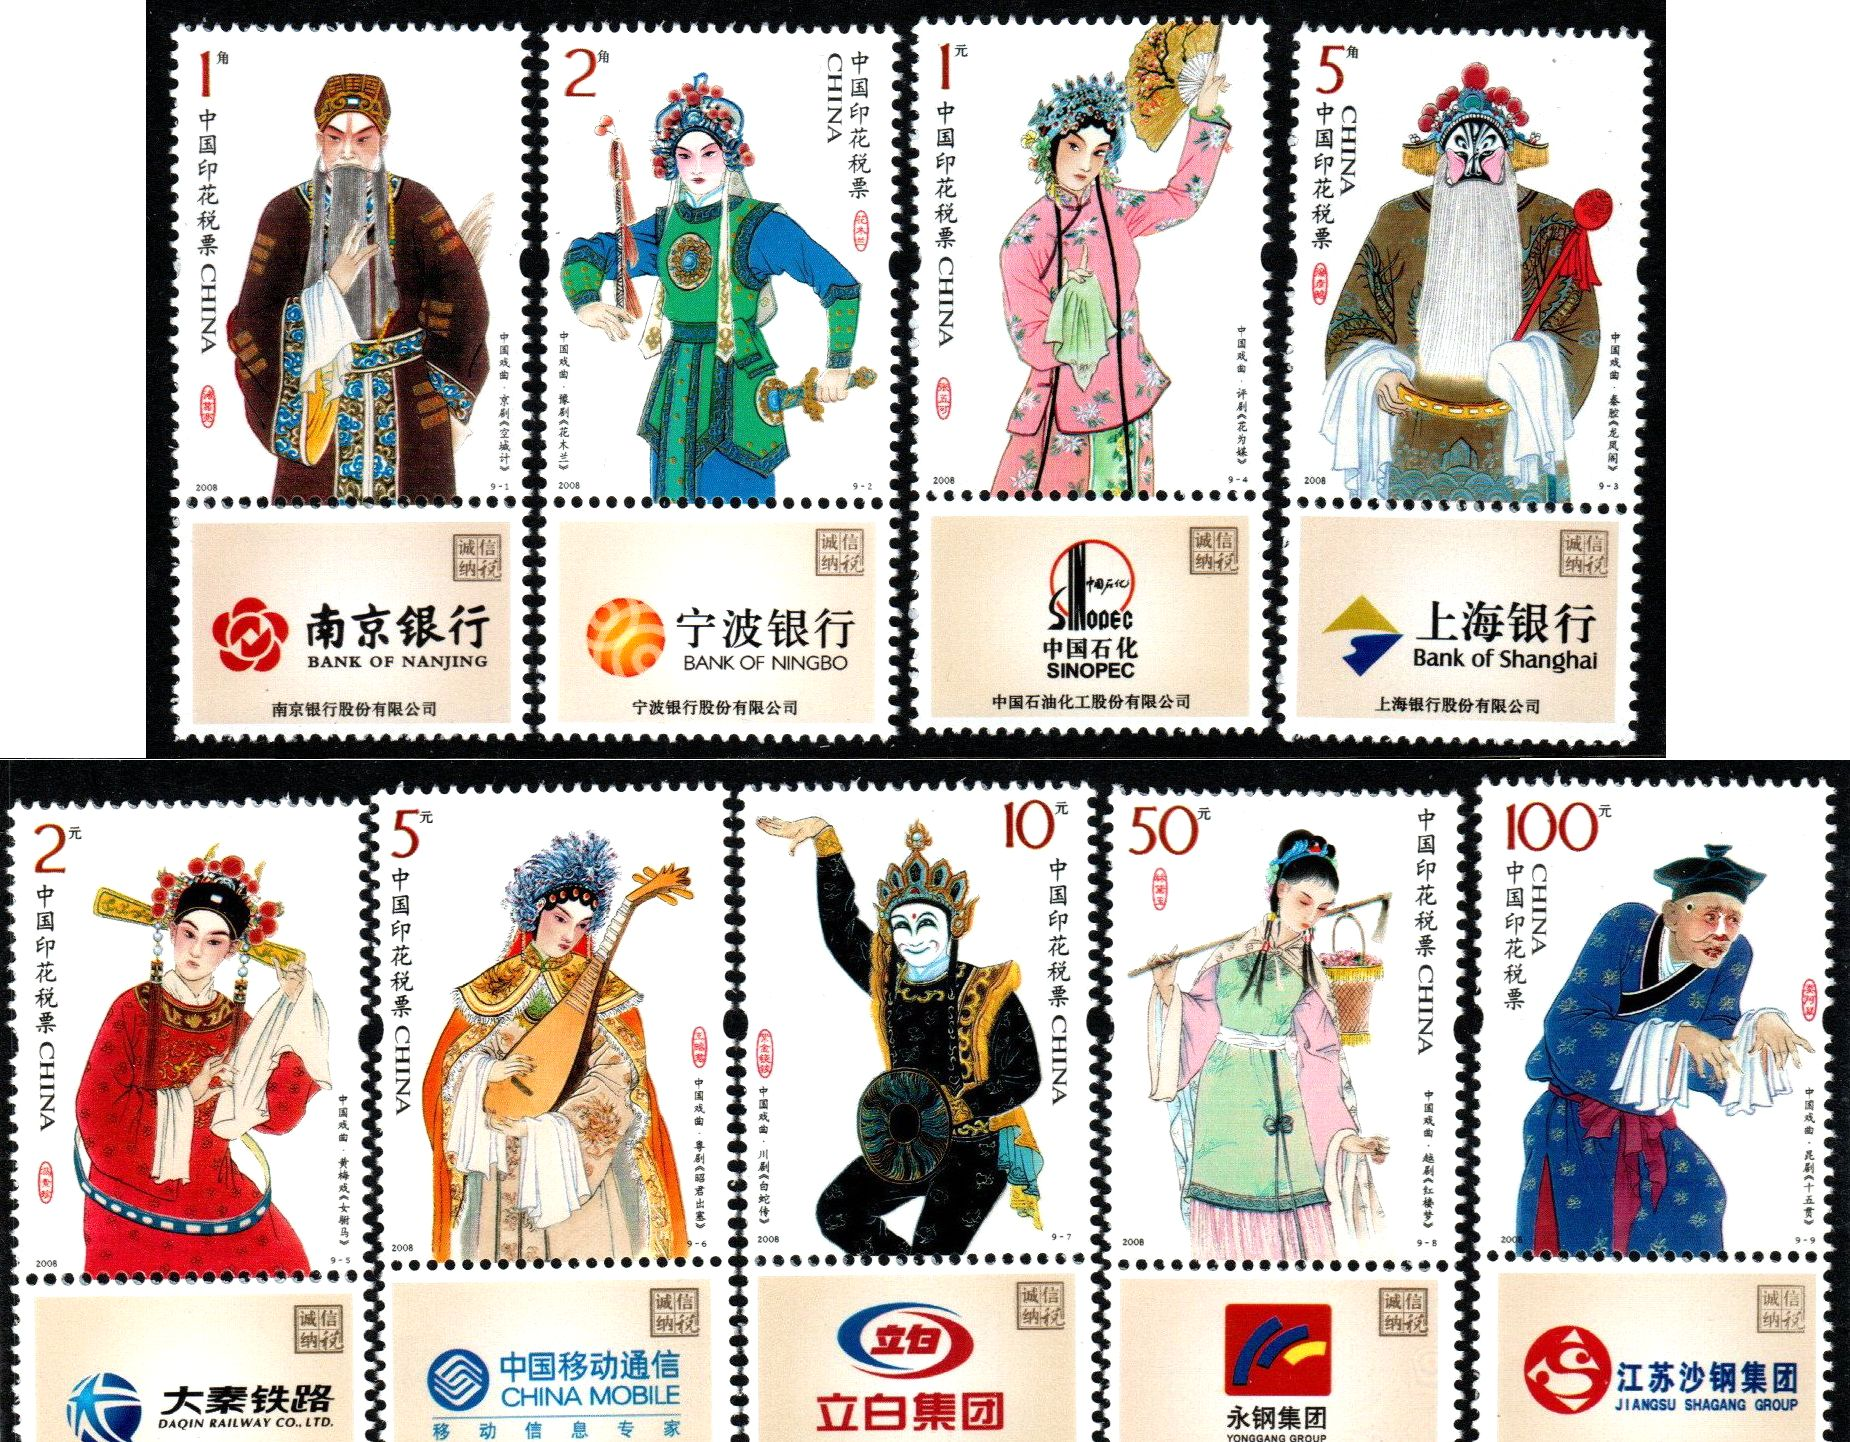 R2222, P.R.China Revenue Stamps, Full set 9 pcs, 2008, Chinese Opera